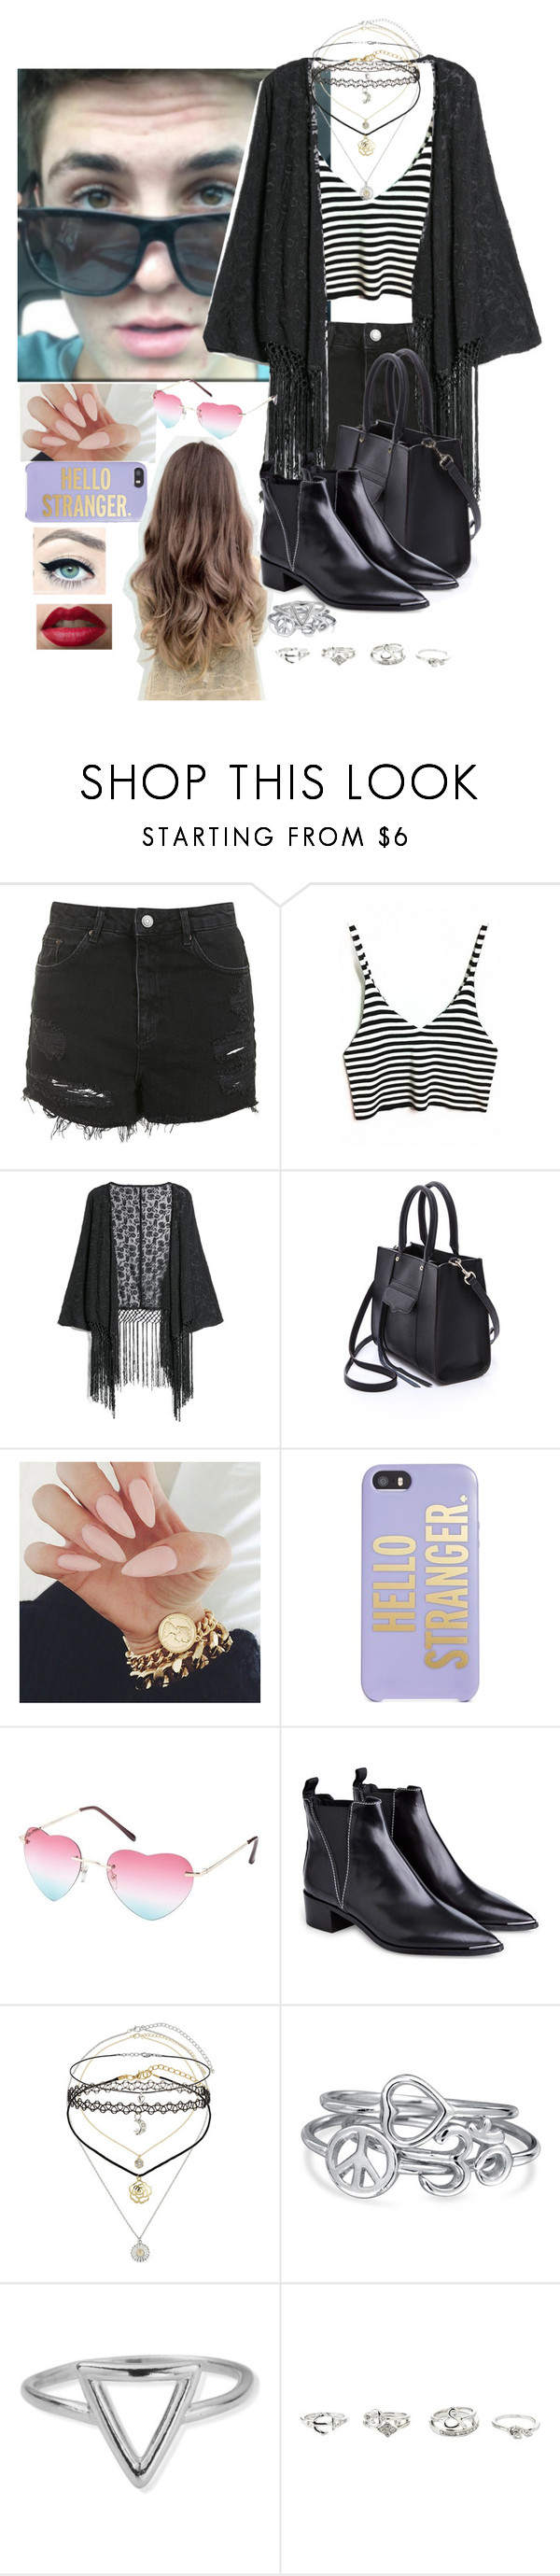 """""""Movies with Sammy"""" by sherifagrier ❤ liked on Polyvore featuring Topshop, MANGO, Rebecca Minkoff, Kate Spade, Charlotte Russe, Acne Studios, Miss Selfridge, Bling Jewelry and ChloBo"""